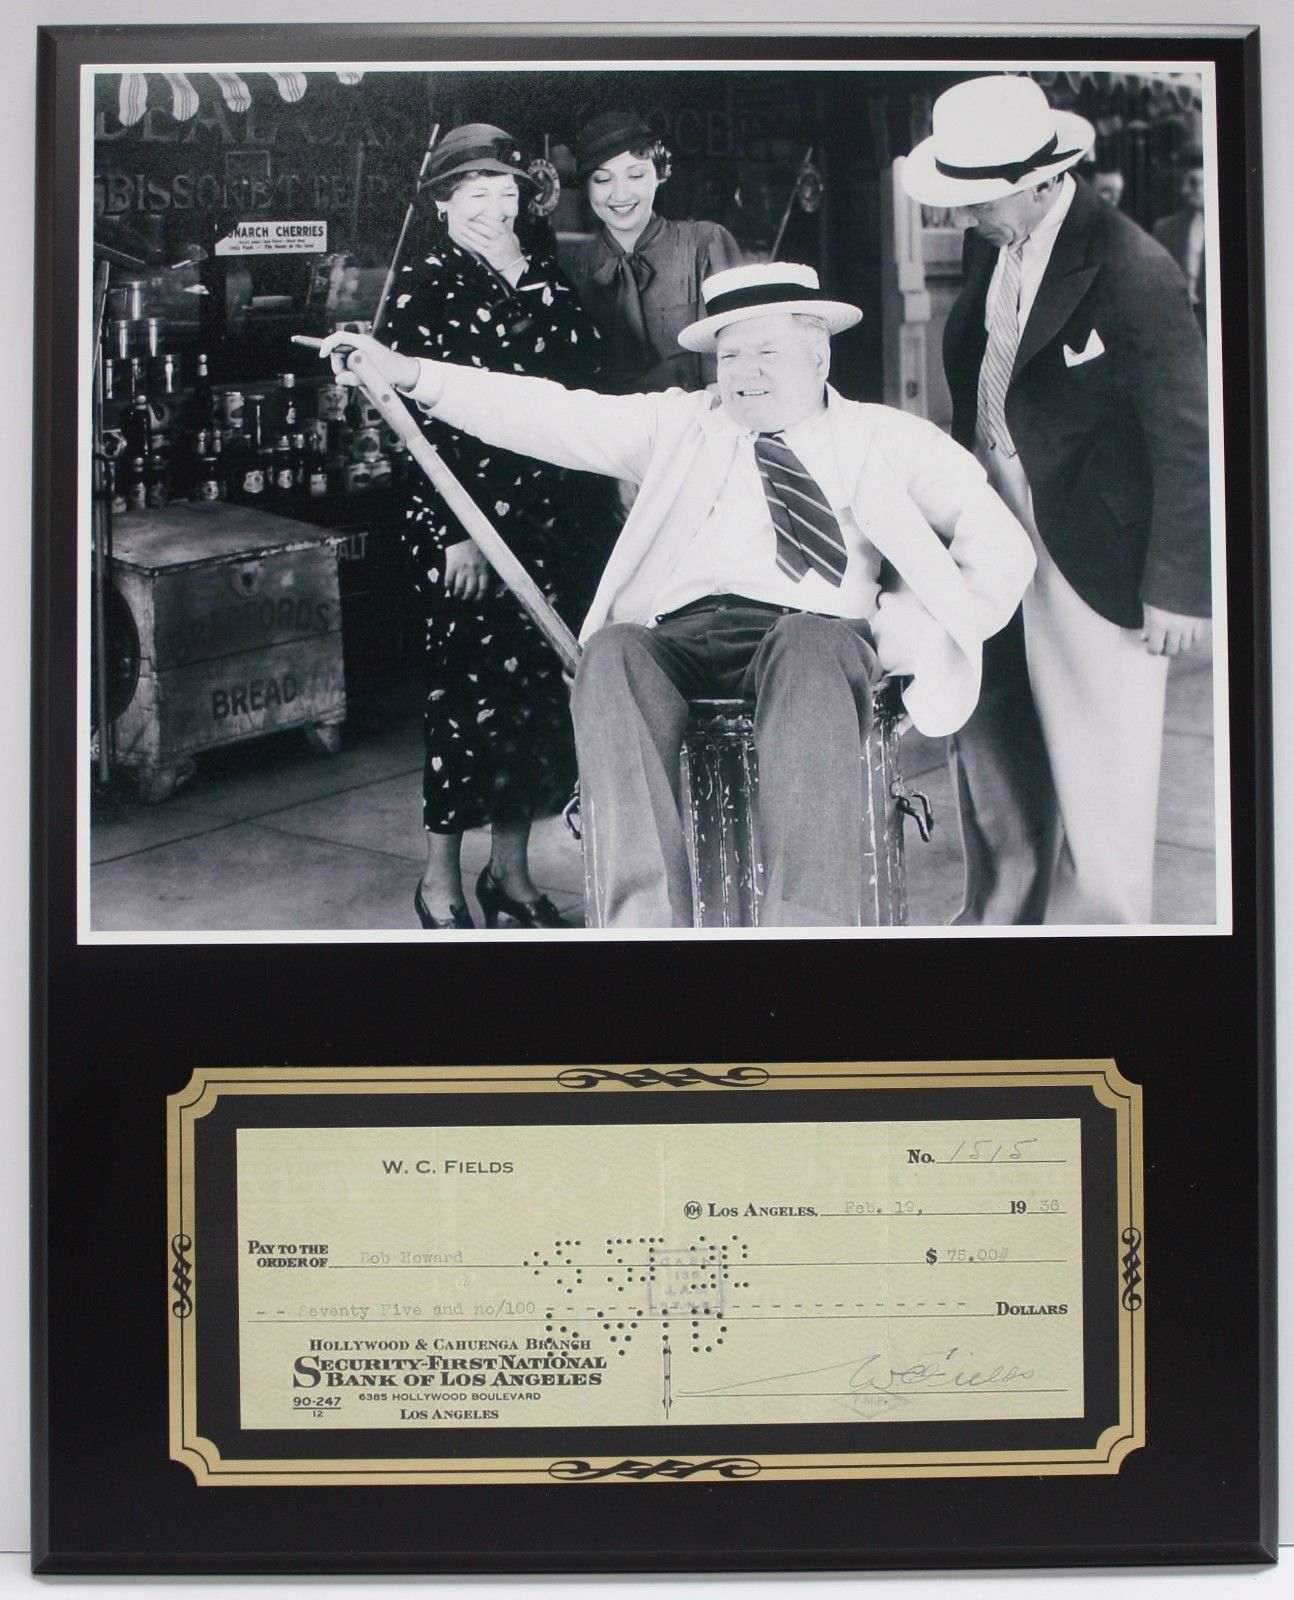 W.C. Fields Comedian Actor Reproduction Signed Limited Edition Check Display